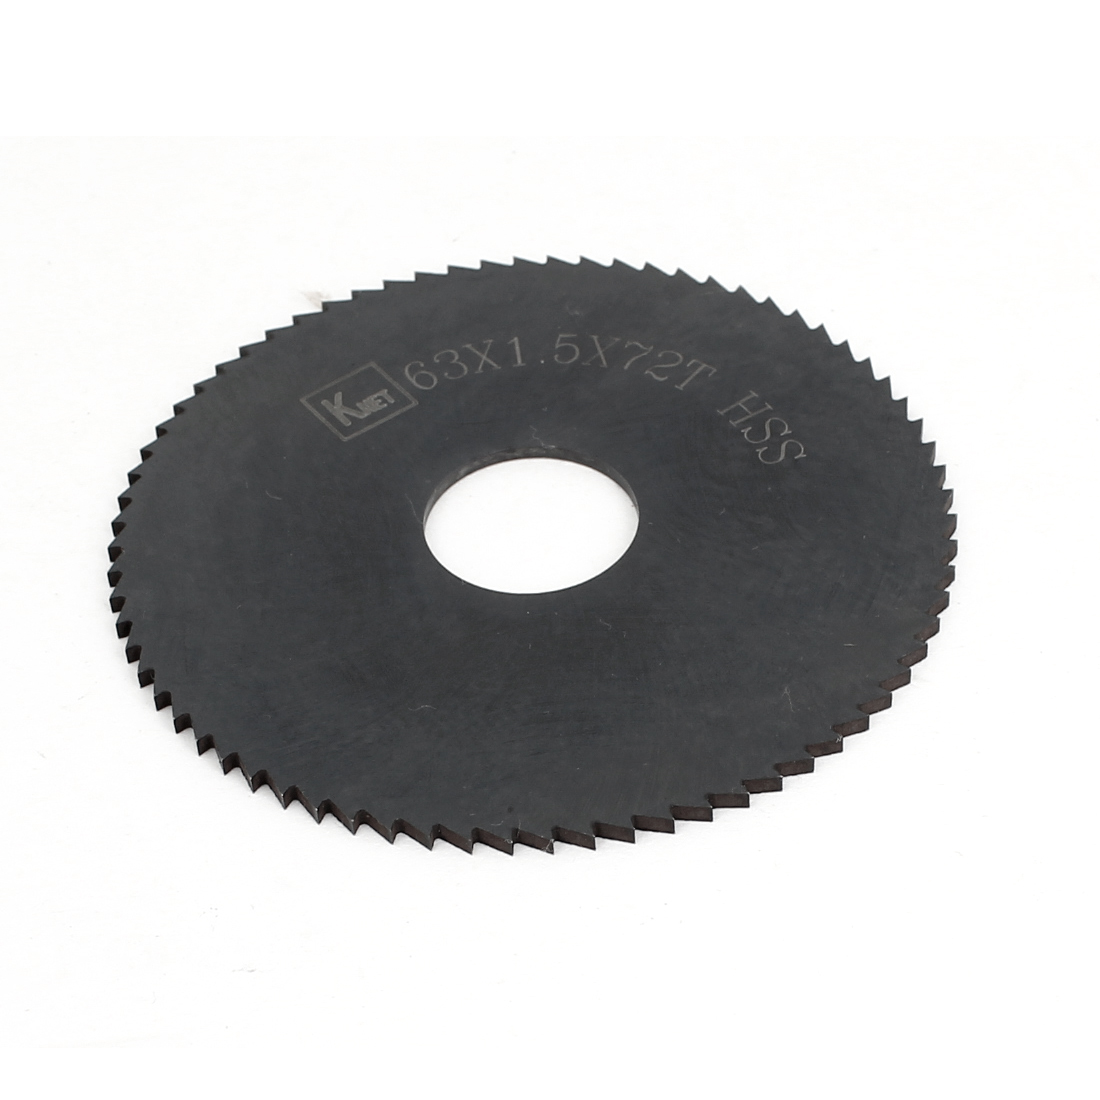 HSS 72 Teeth 63mm x 1.5mm x 16mm Slitting Saw Blade Replacement